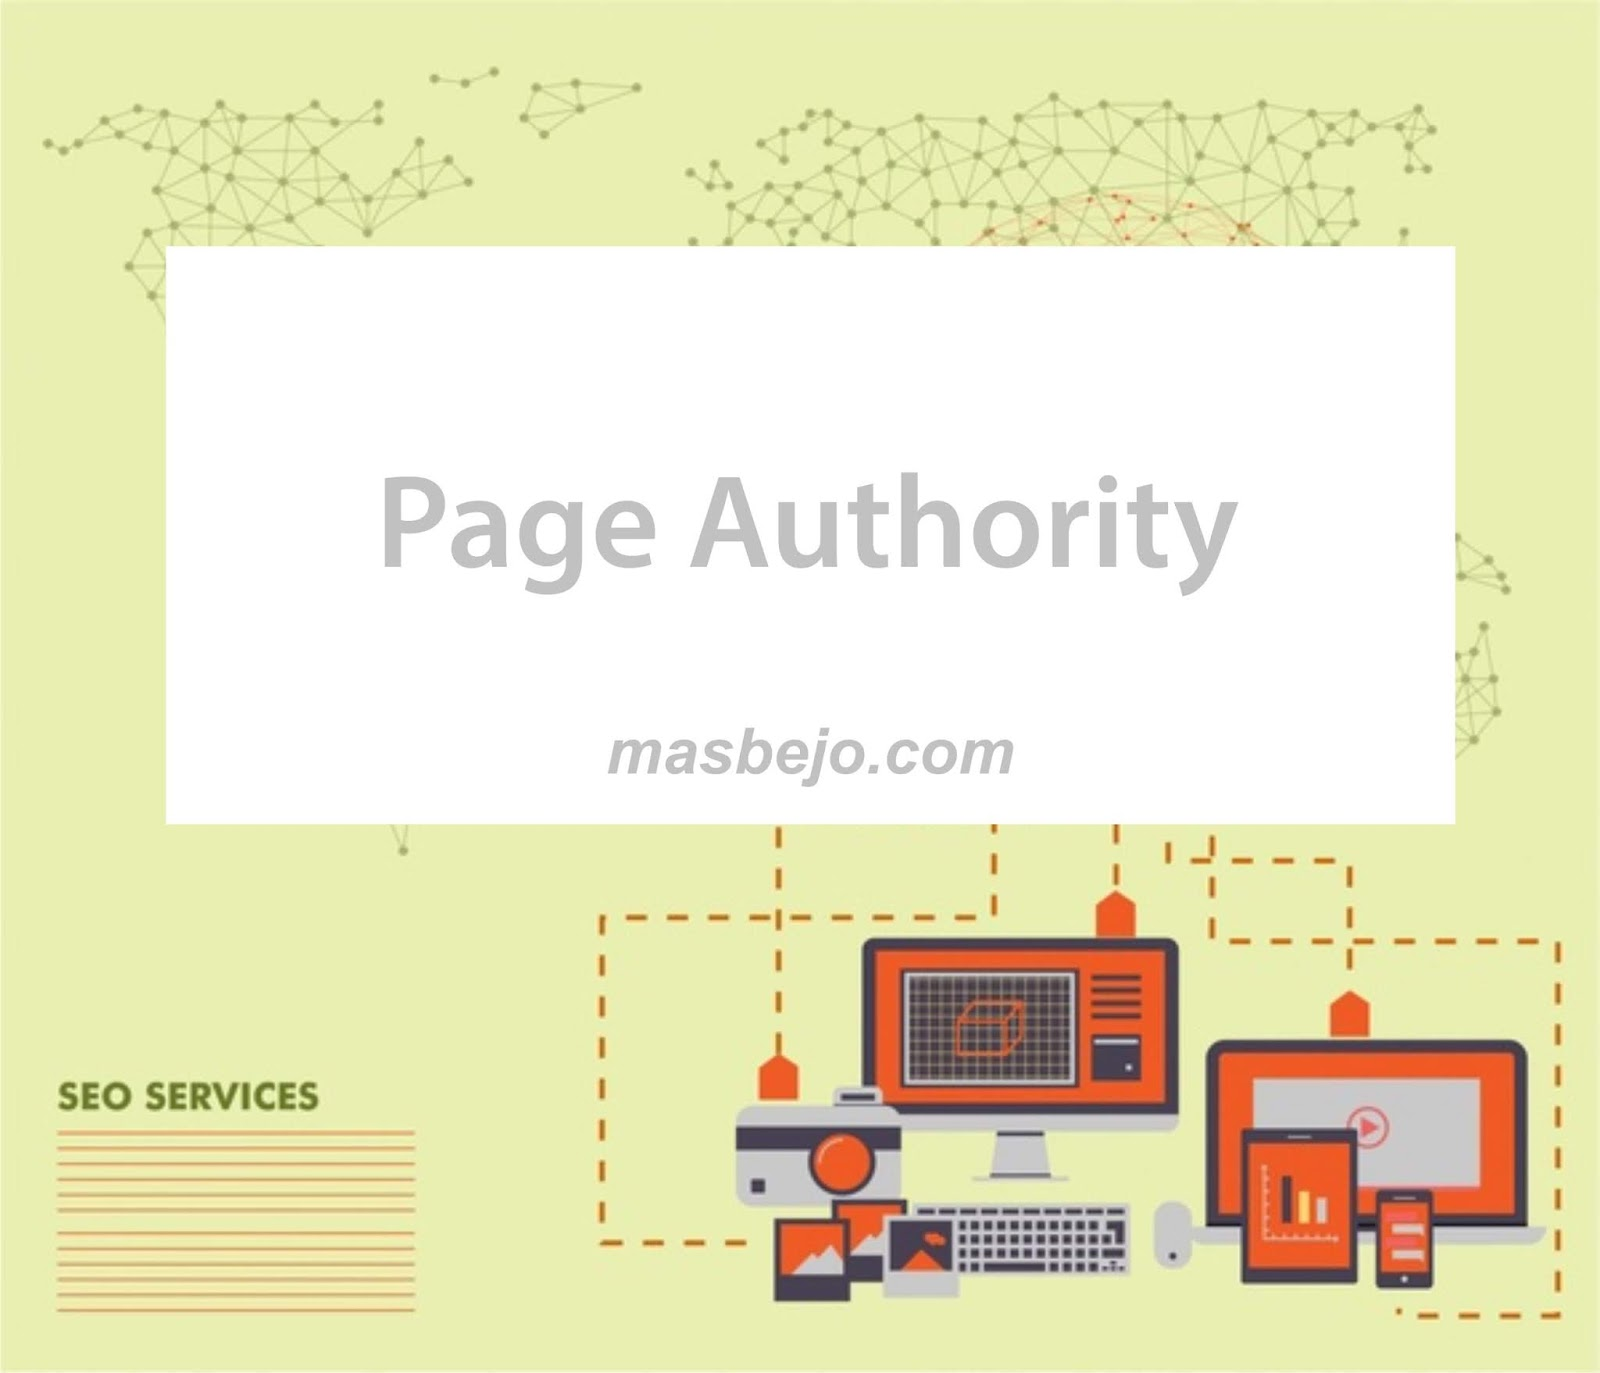 page authority